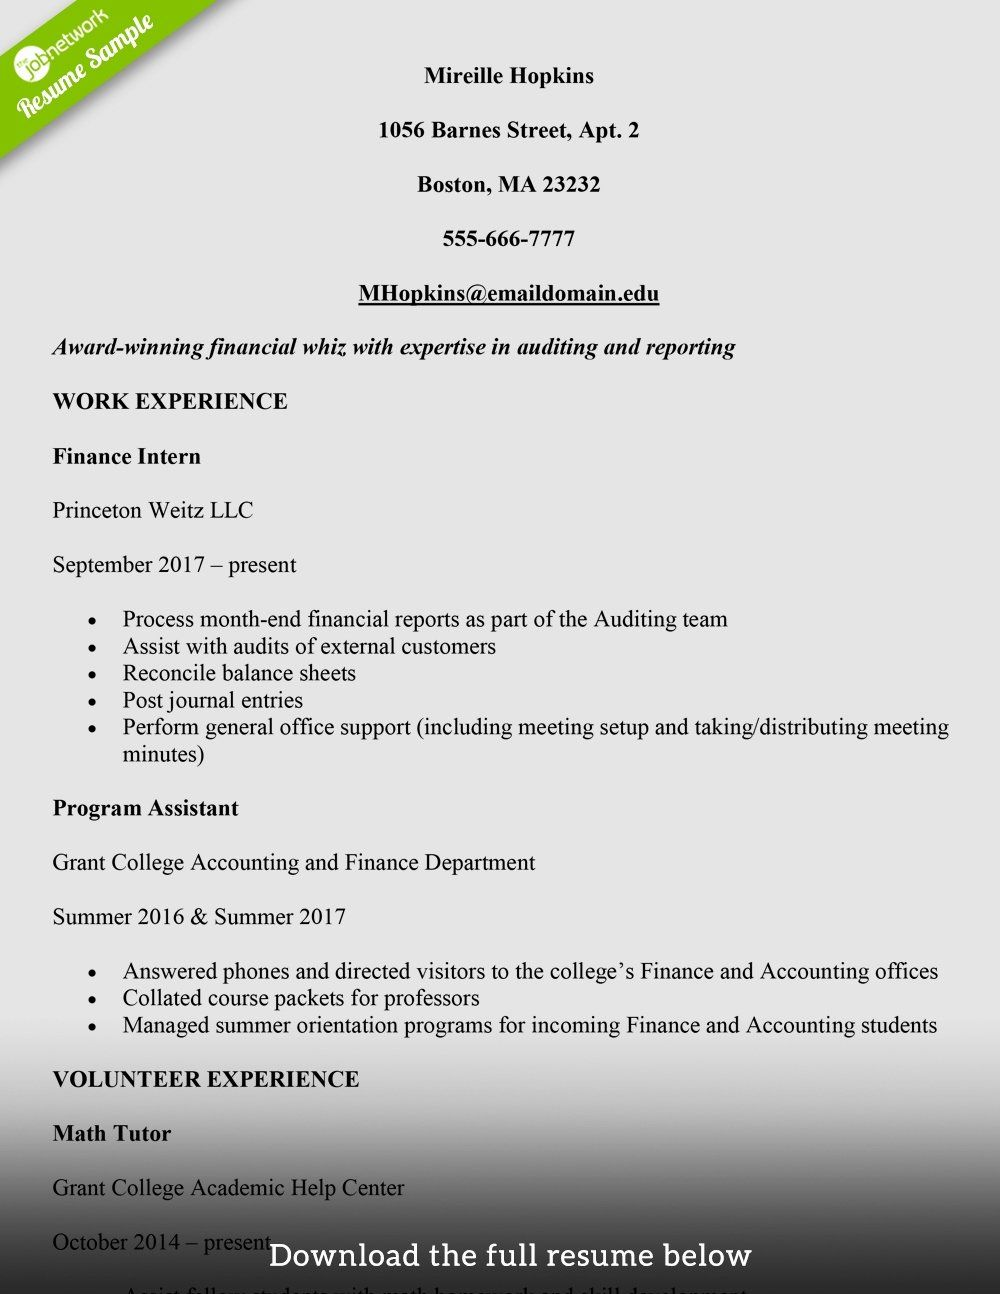 40 Resume Samples for College Student in 2020 (With images